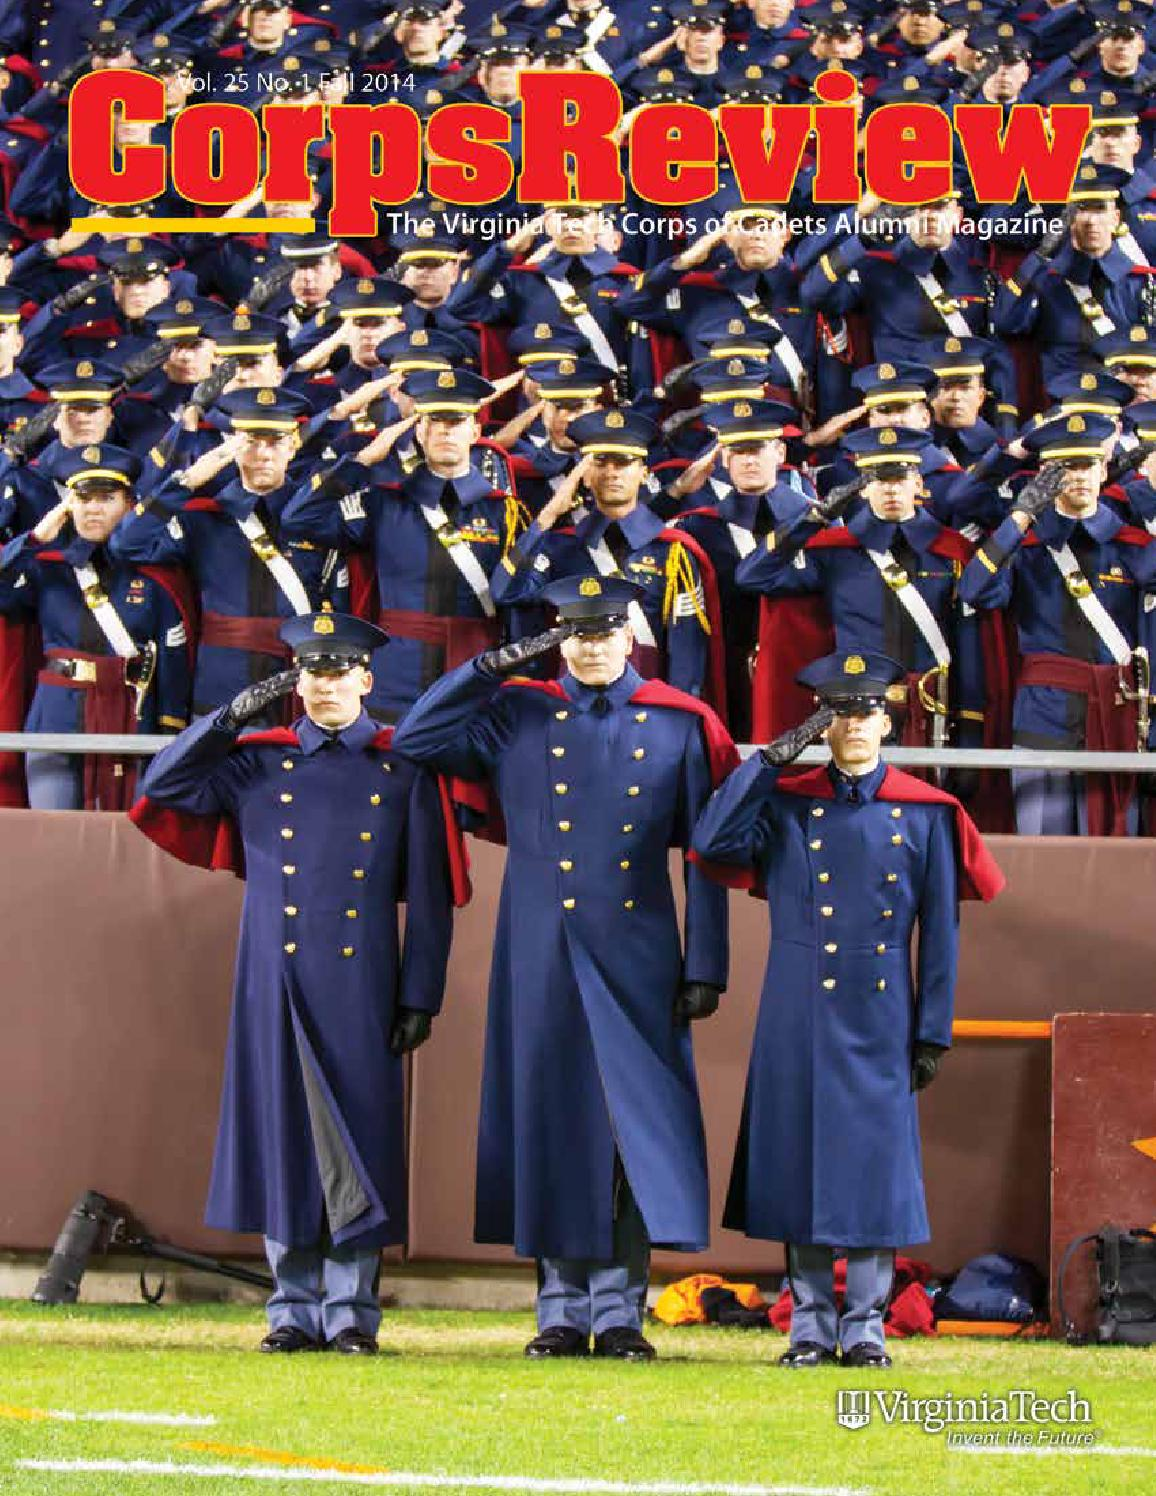 corps review summer by virginia tech corps of cadets alumni corps review vol 25 no 1 fall 2014